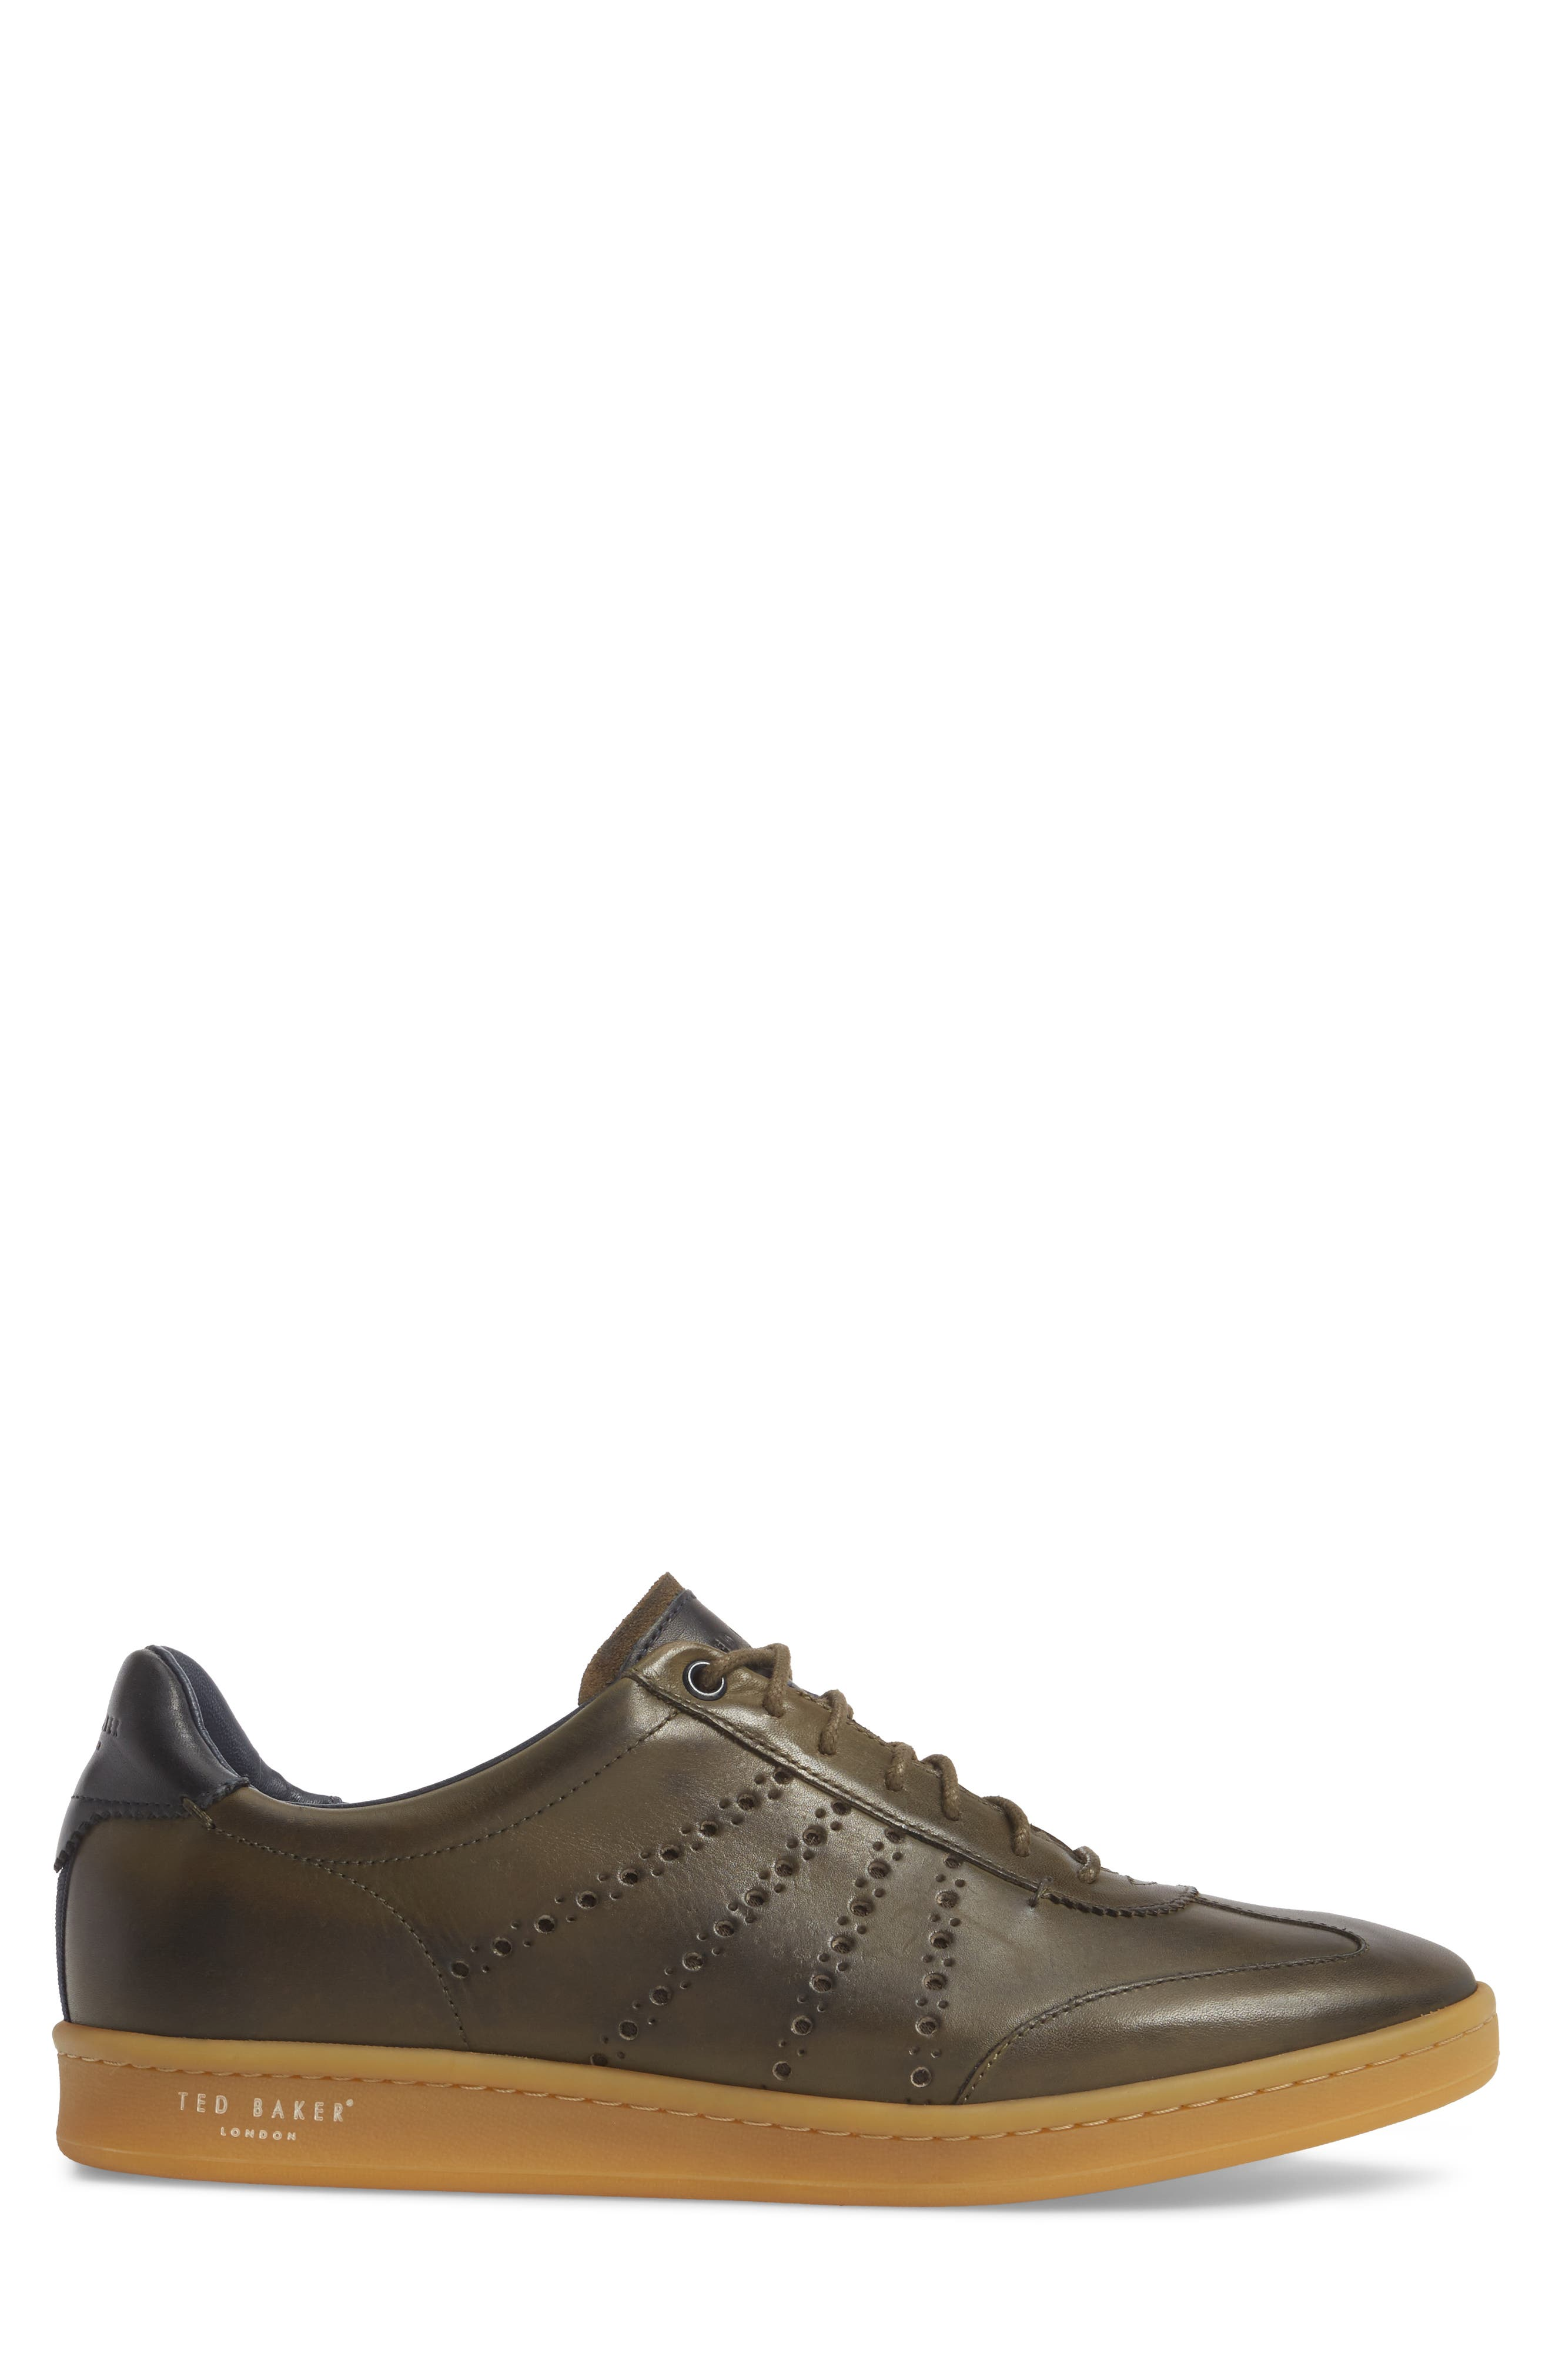 Orlee Sneaker,                             Alternate thumbnail 3, color,                             Dark Green Leather